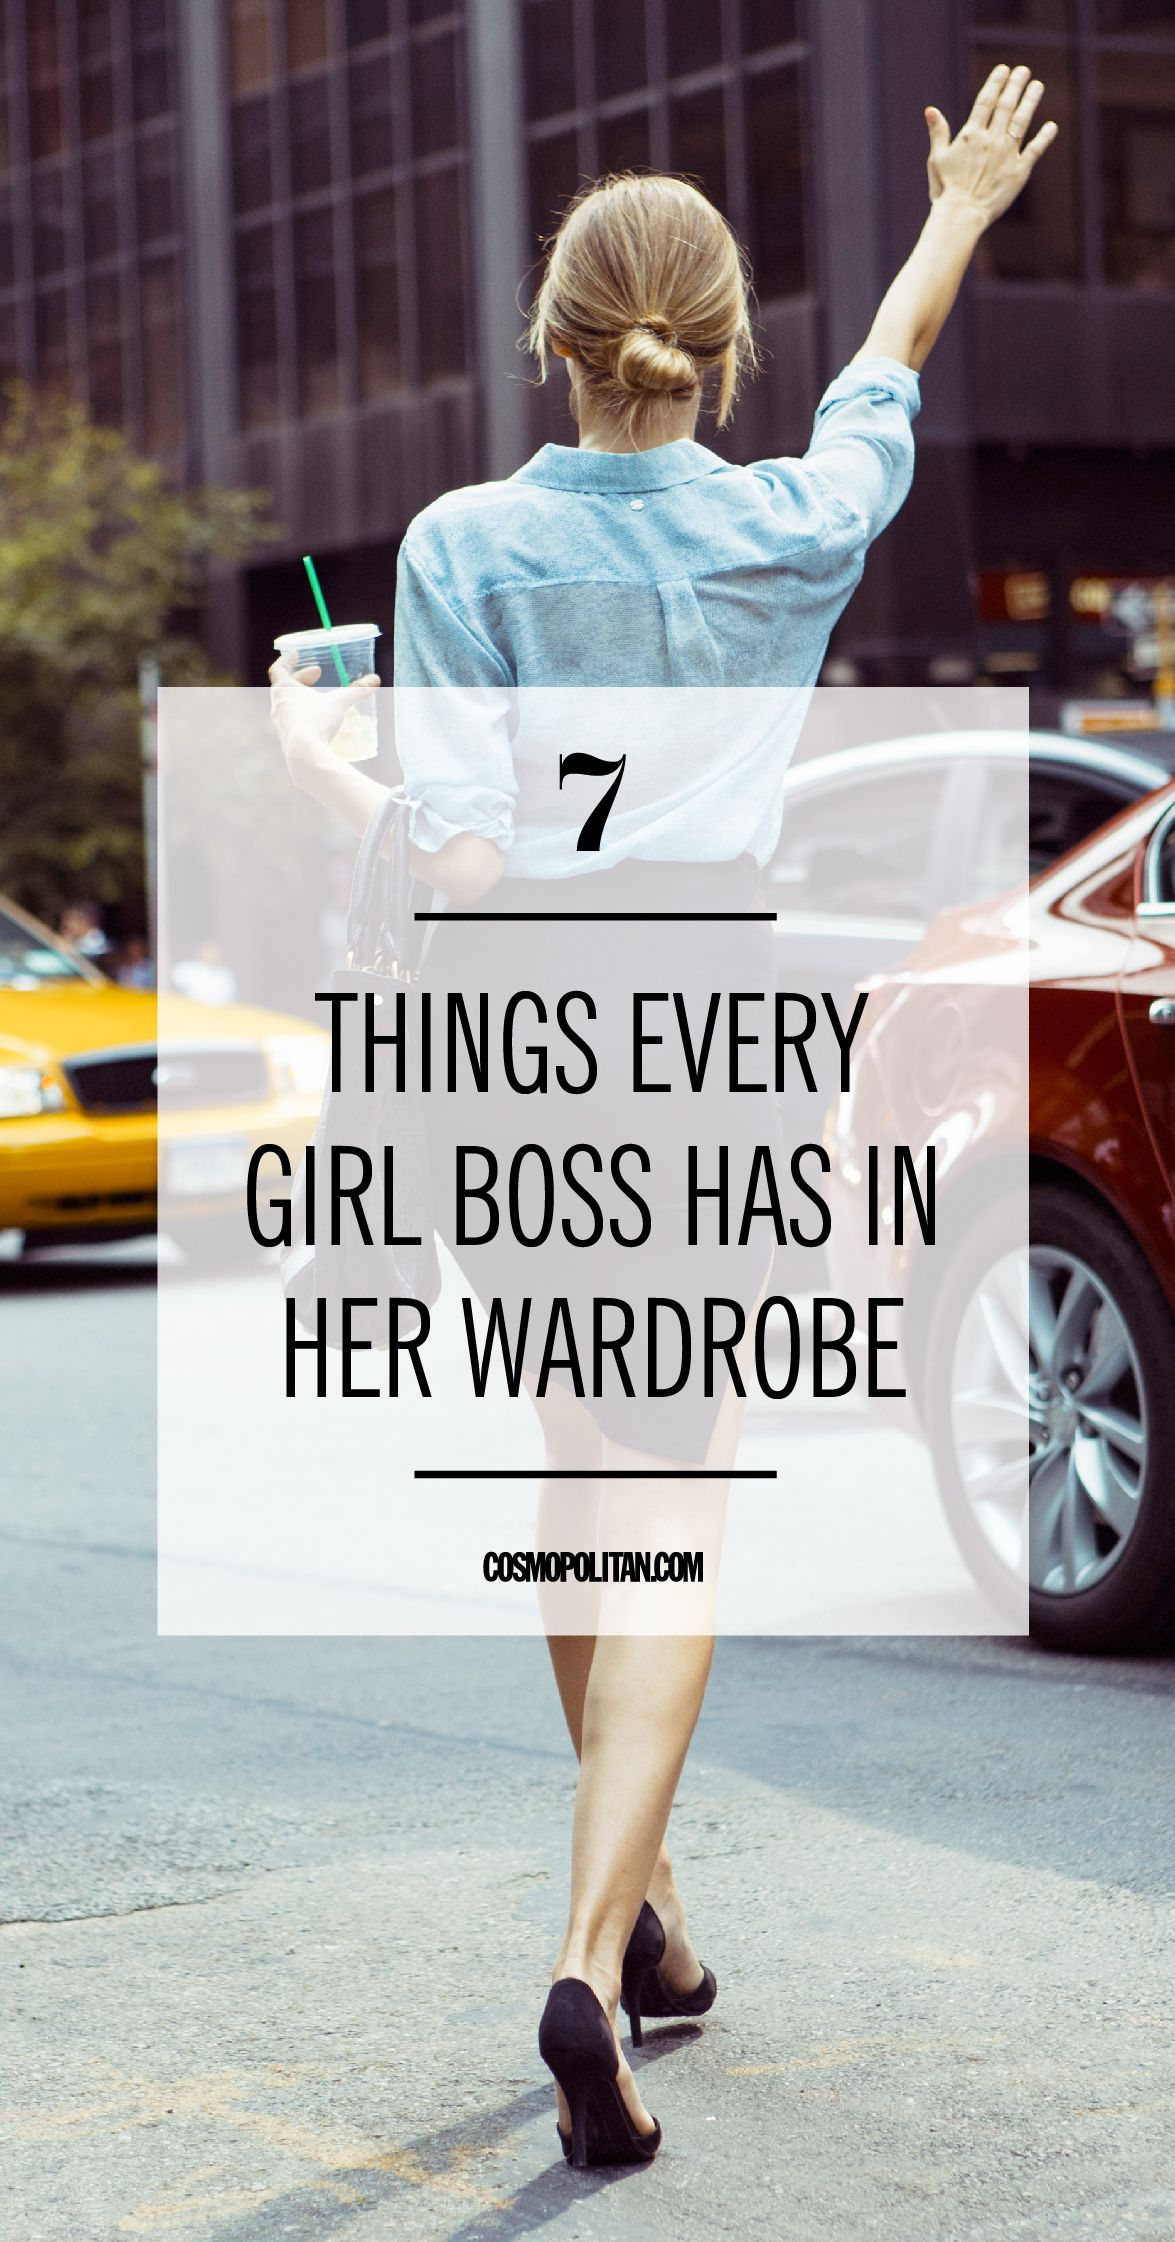 7 Things Every Girl Boss Has in Her Wardrobe  Girl boss, Fashion